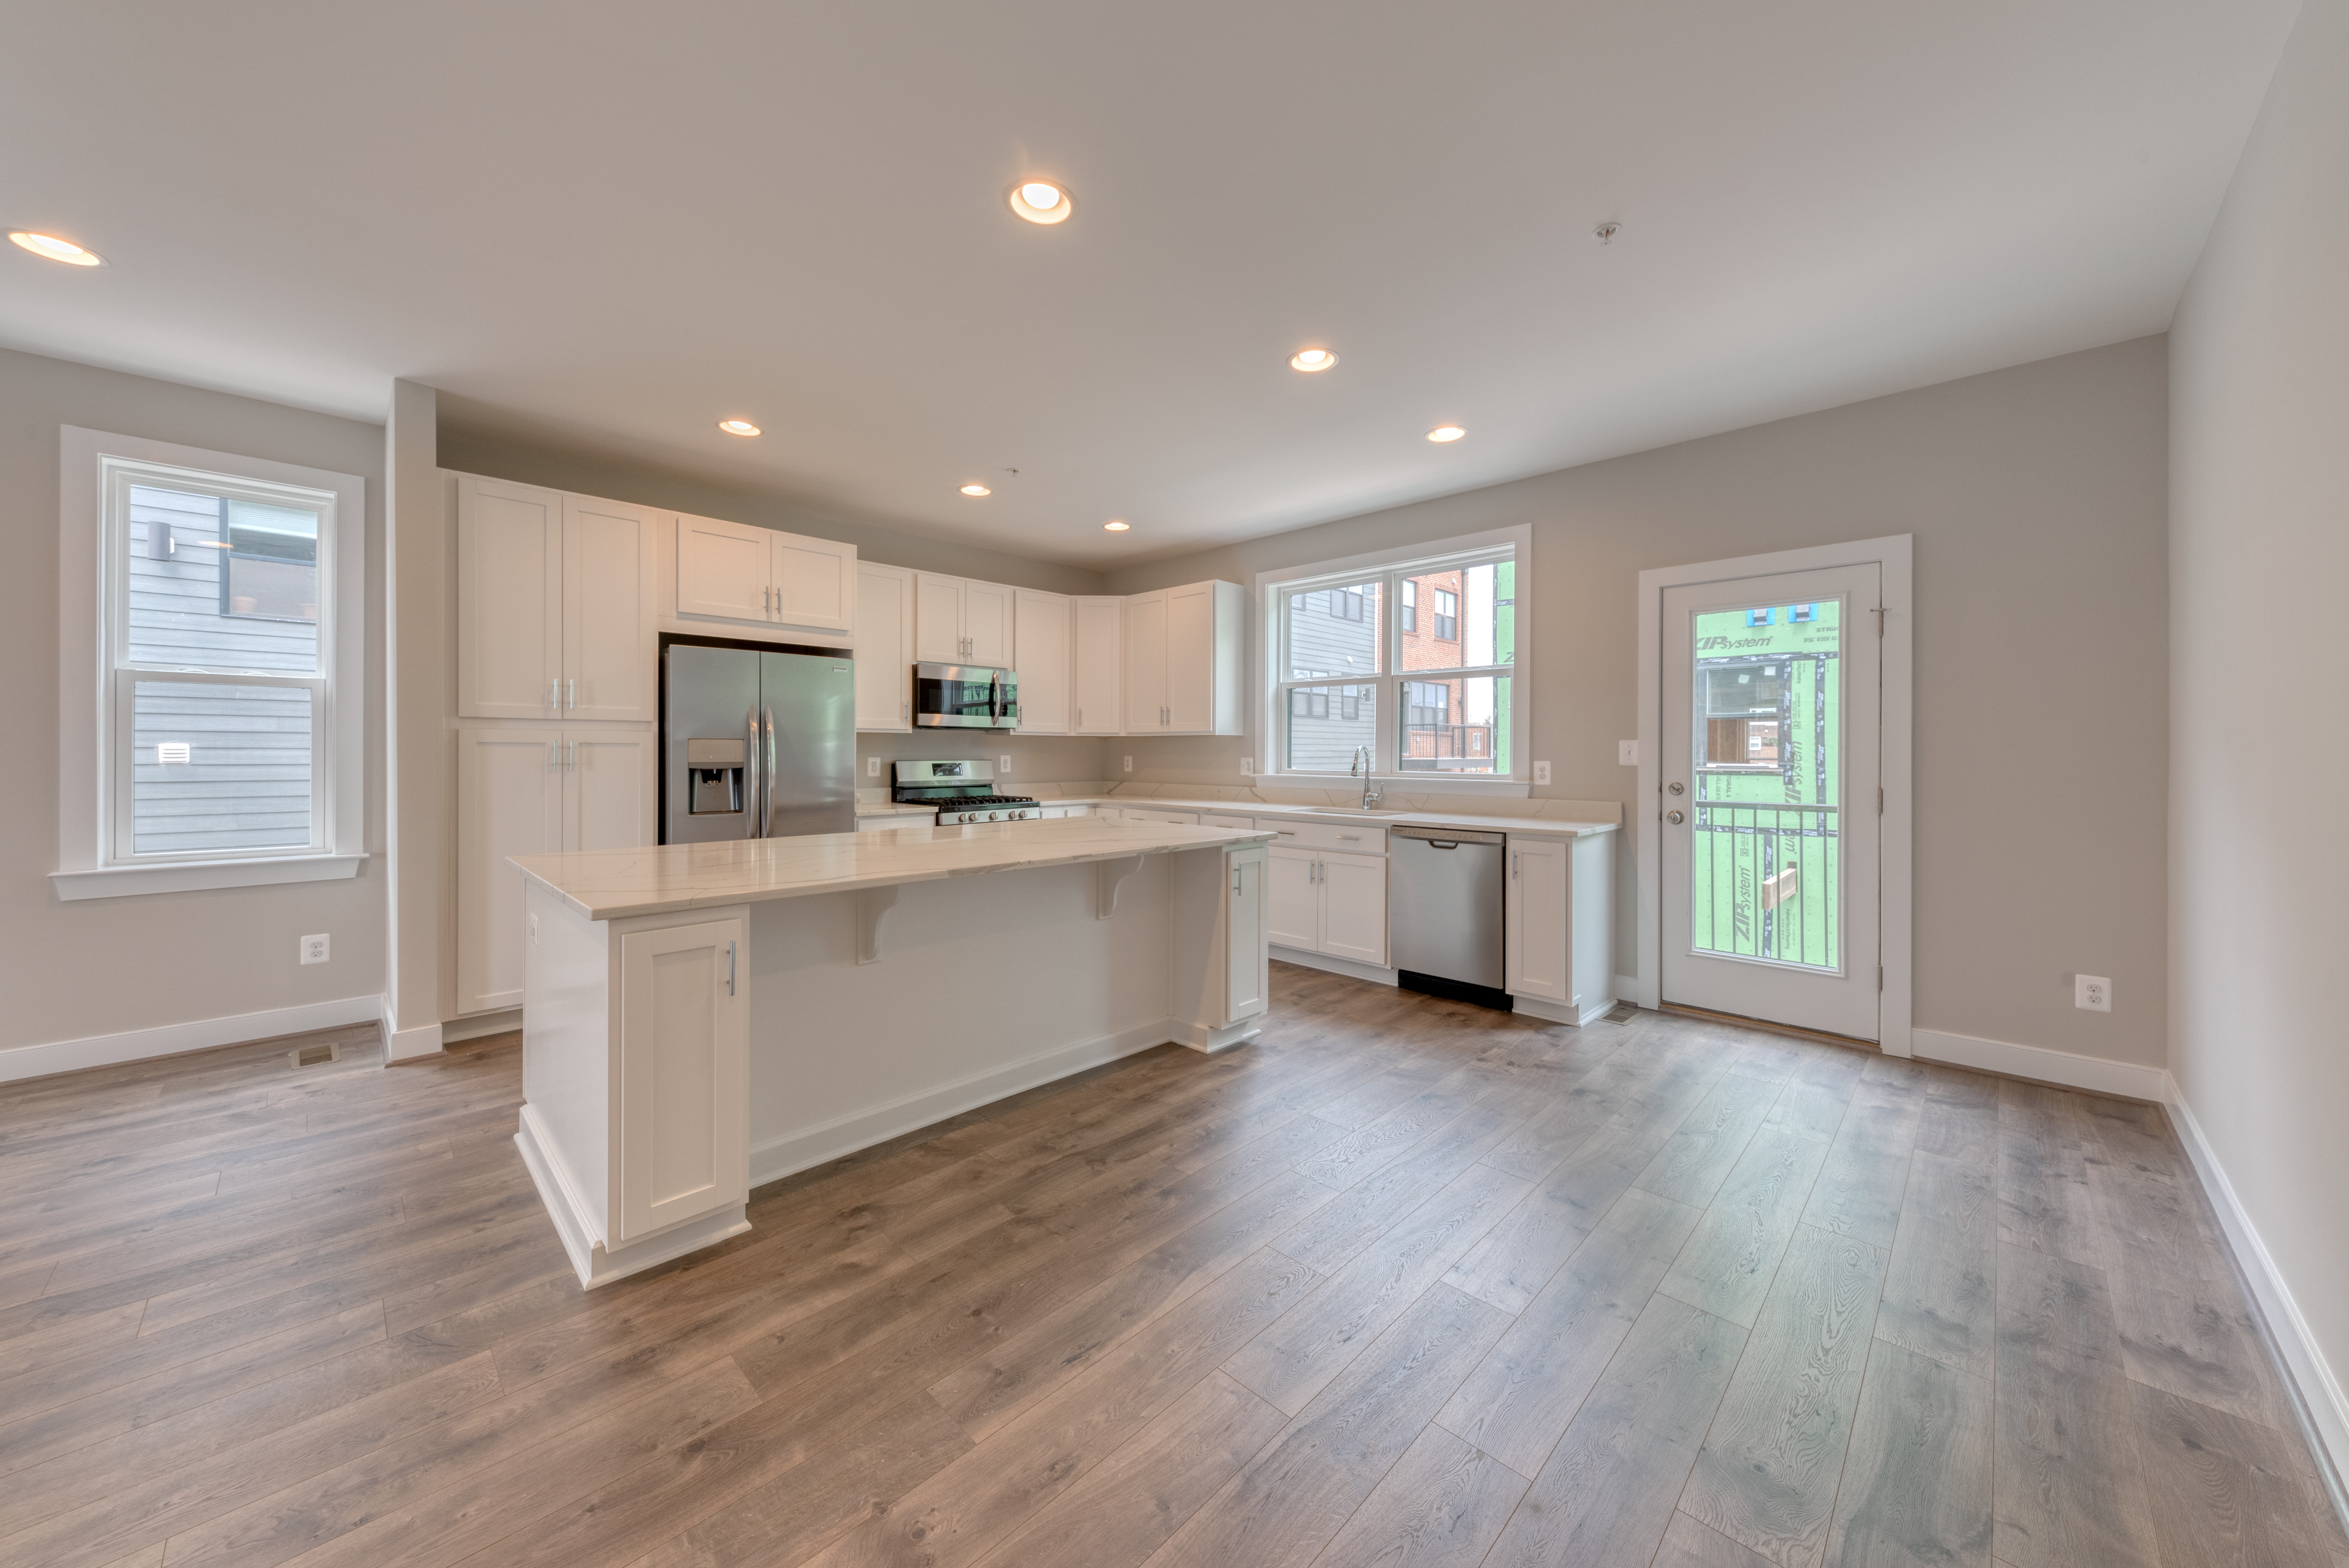 White Kitchen Cabinet Quartz Counters and Stainless Steel Appliances